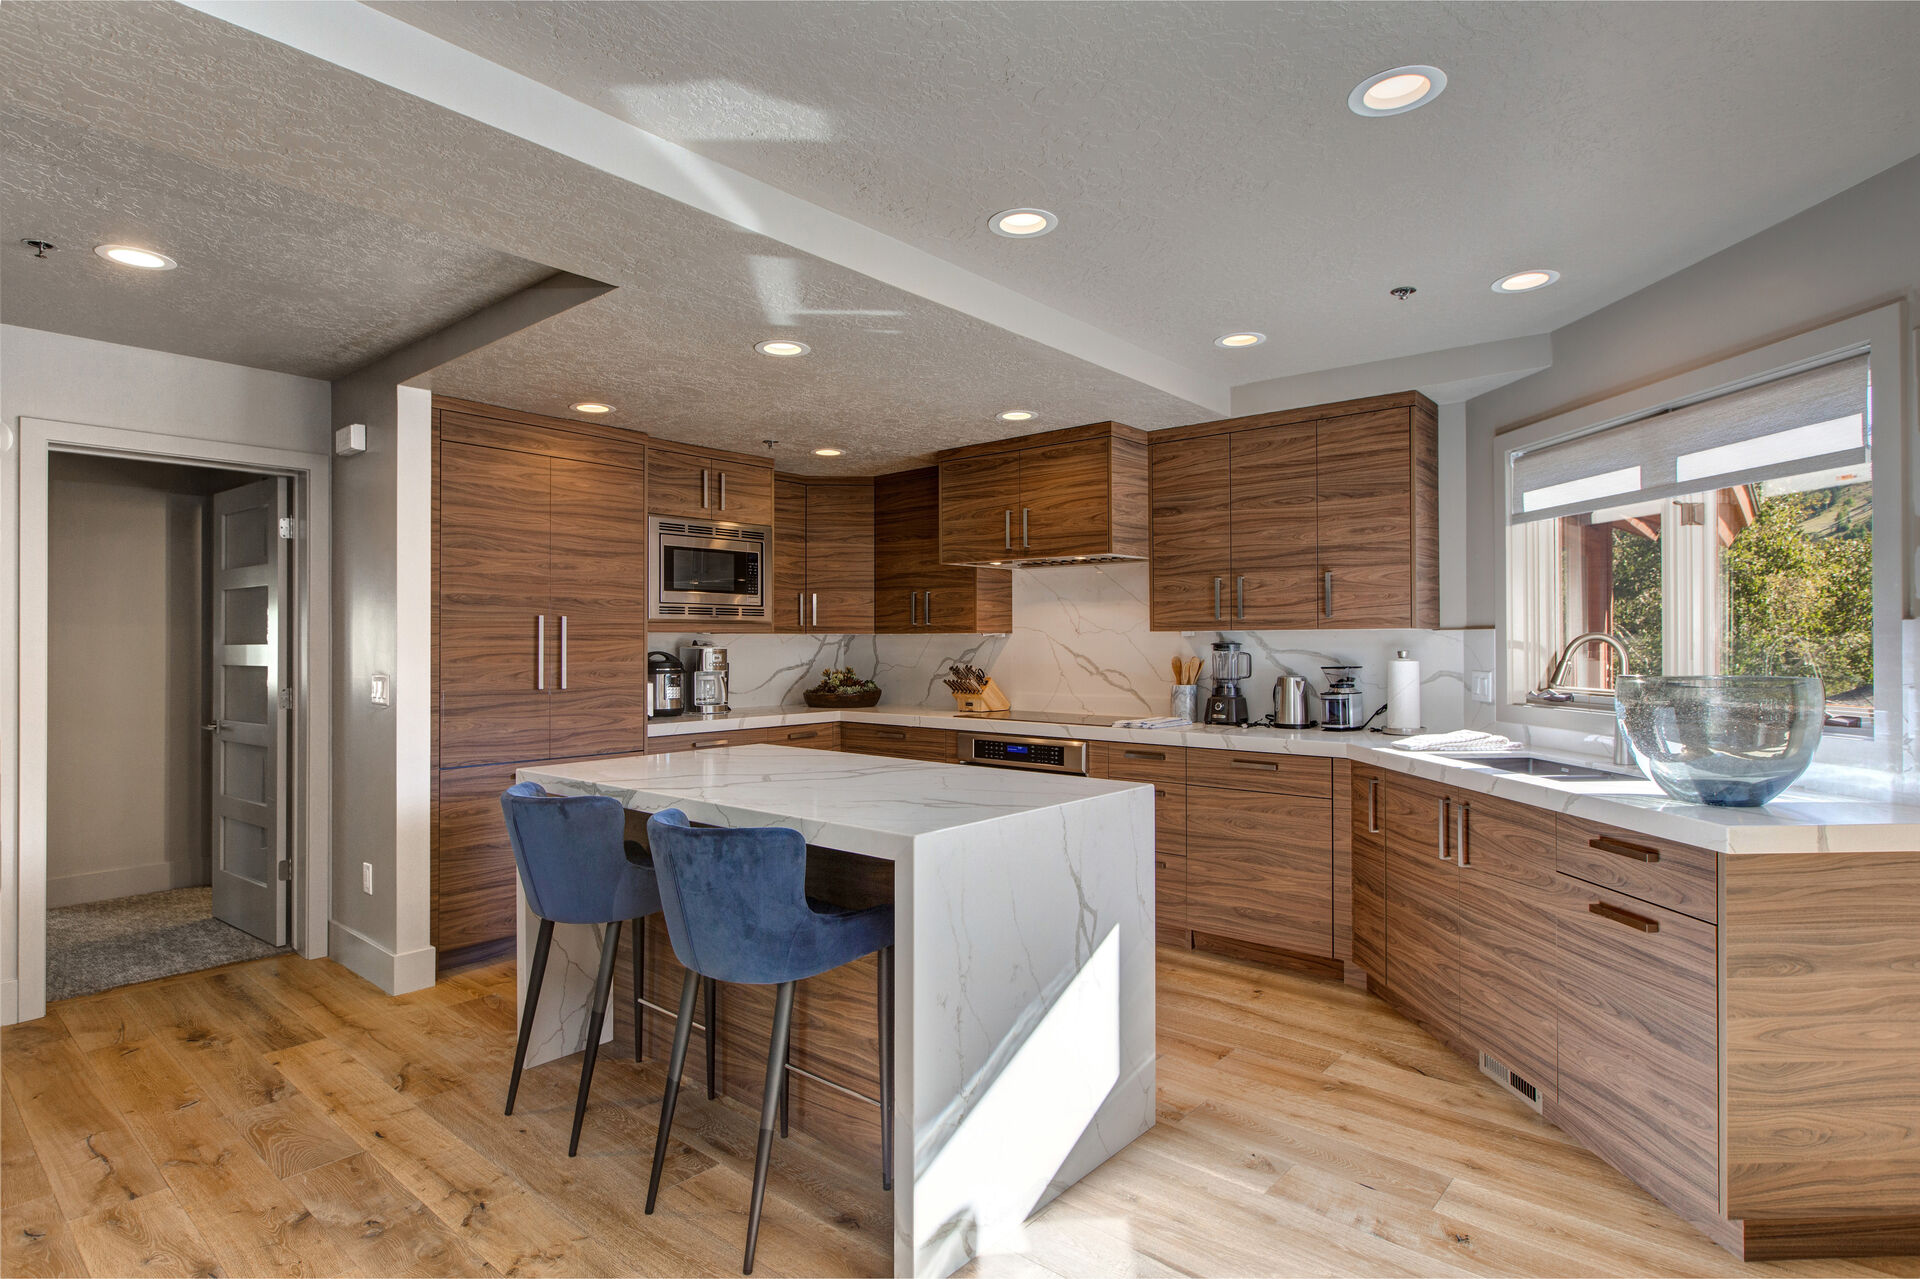 Kitchen with Counter Table in Our Deer Valley Ski In Ski Out Rentals.